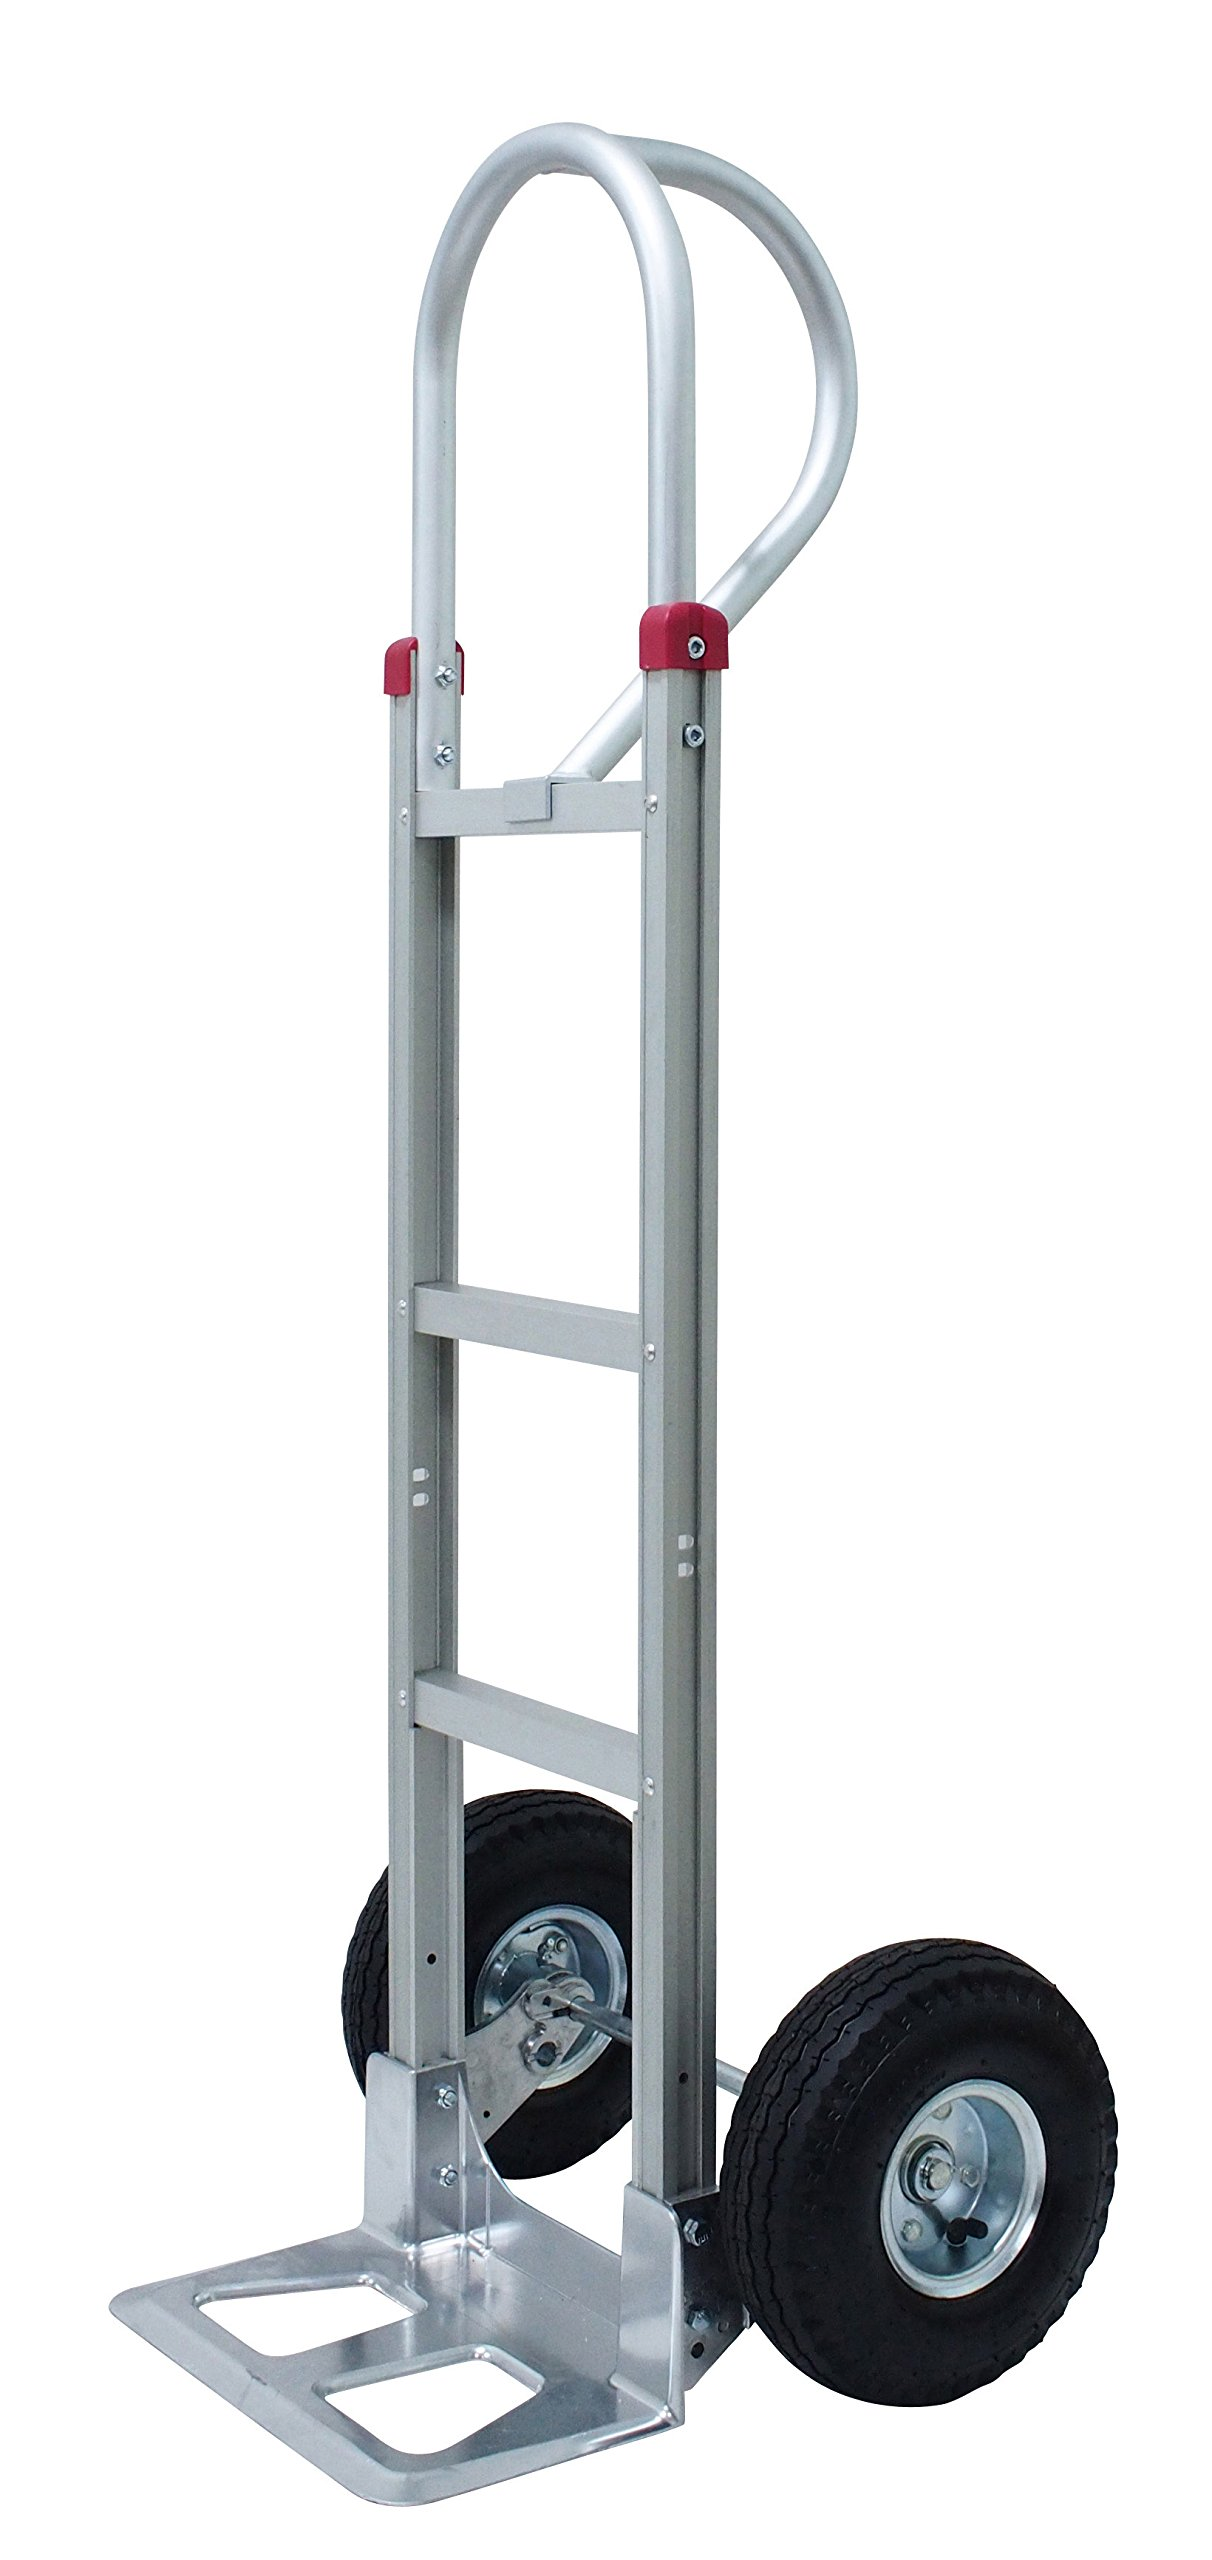 Tyke Supply Aluminum Hand Truck by Tyke Supply